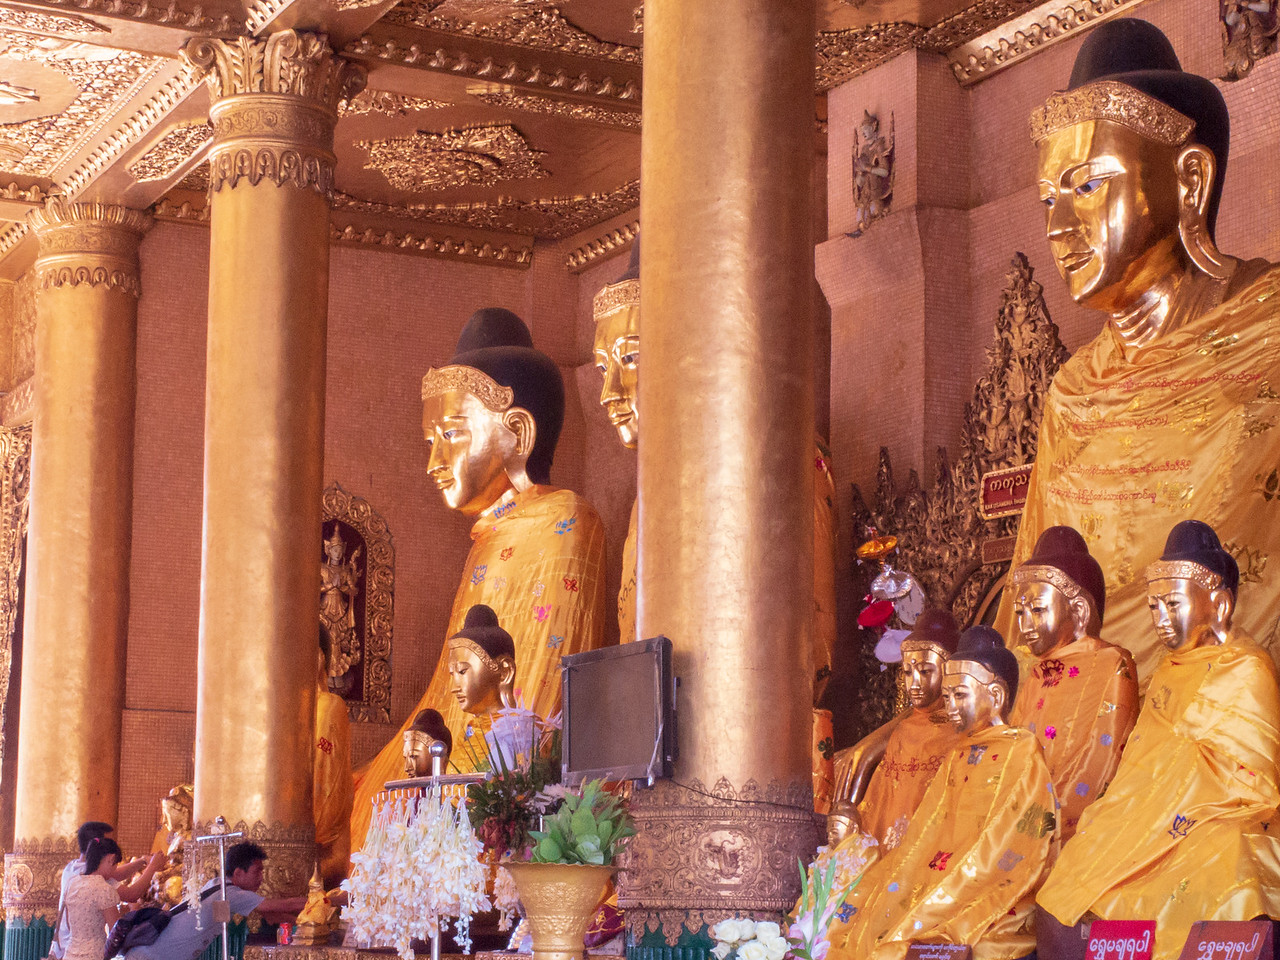 Devotees Praying to Giant Buddha Images at Shwedagon Pagoda